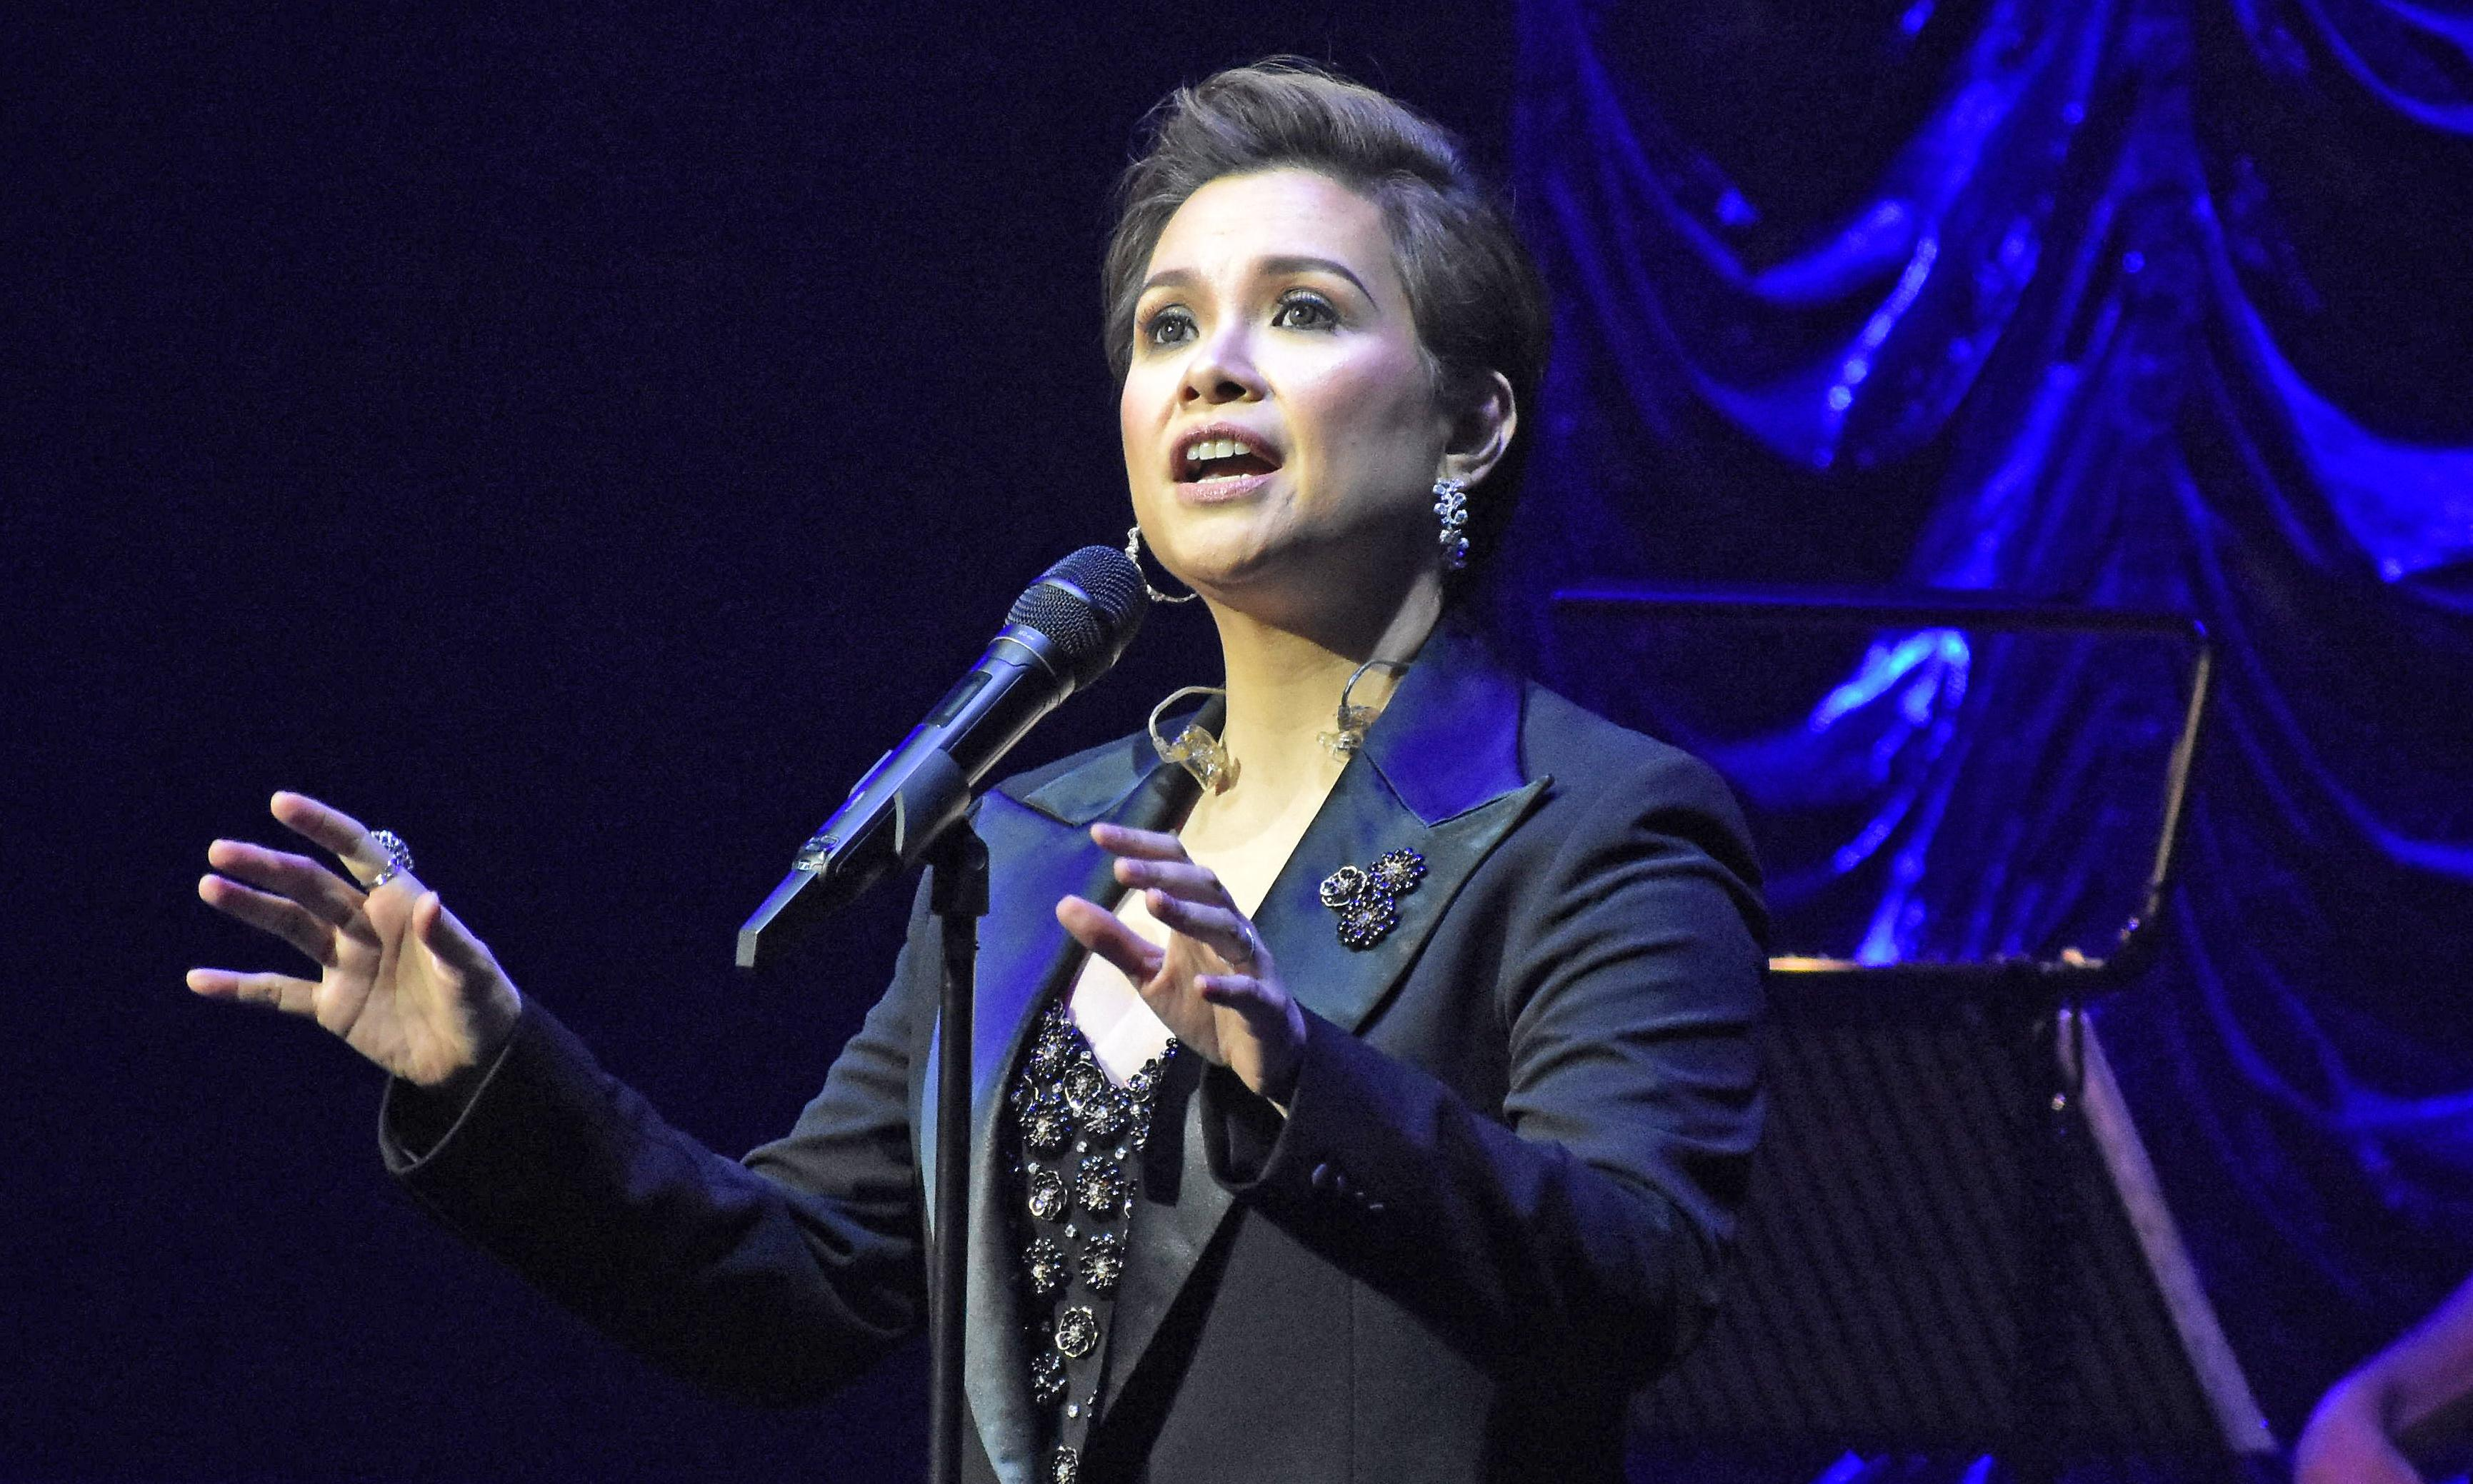 Lea Salonga review – musicals star evokes whole new world of stories